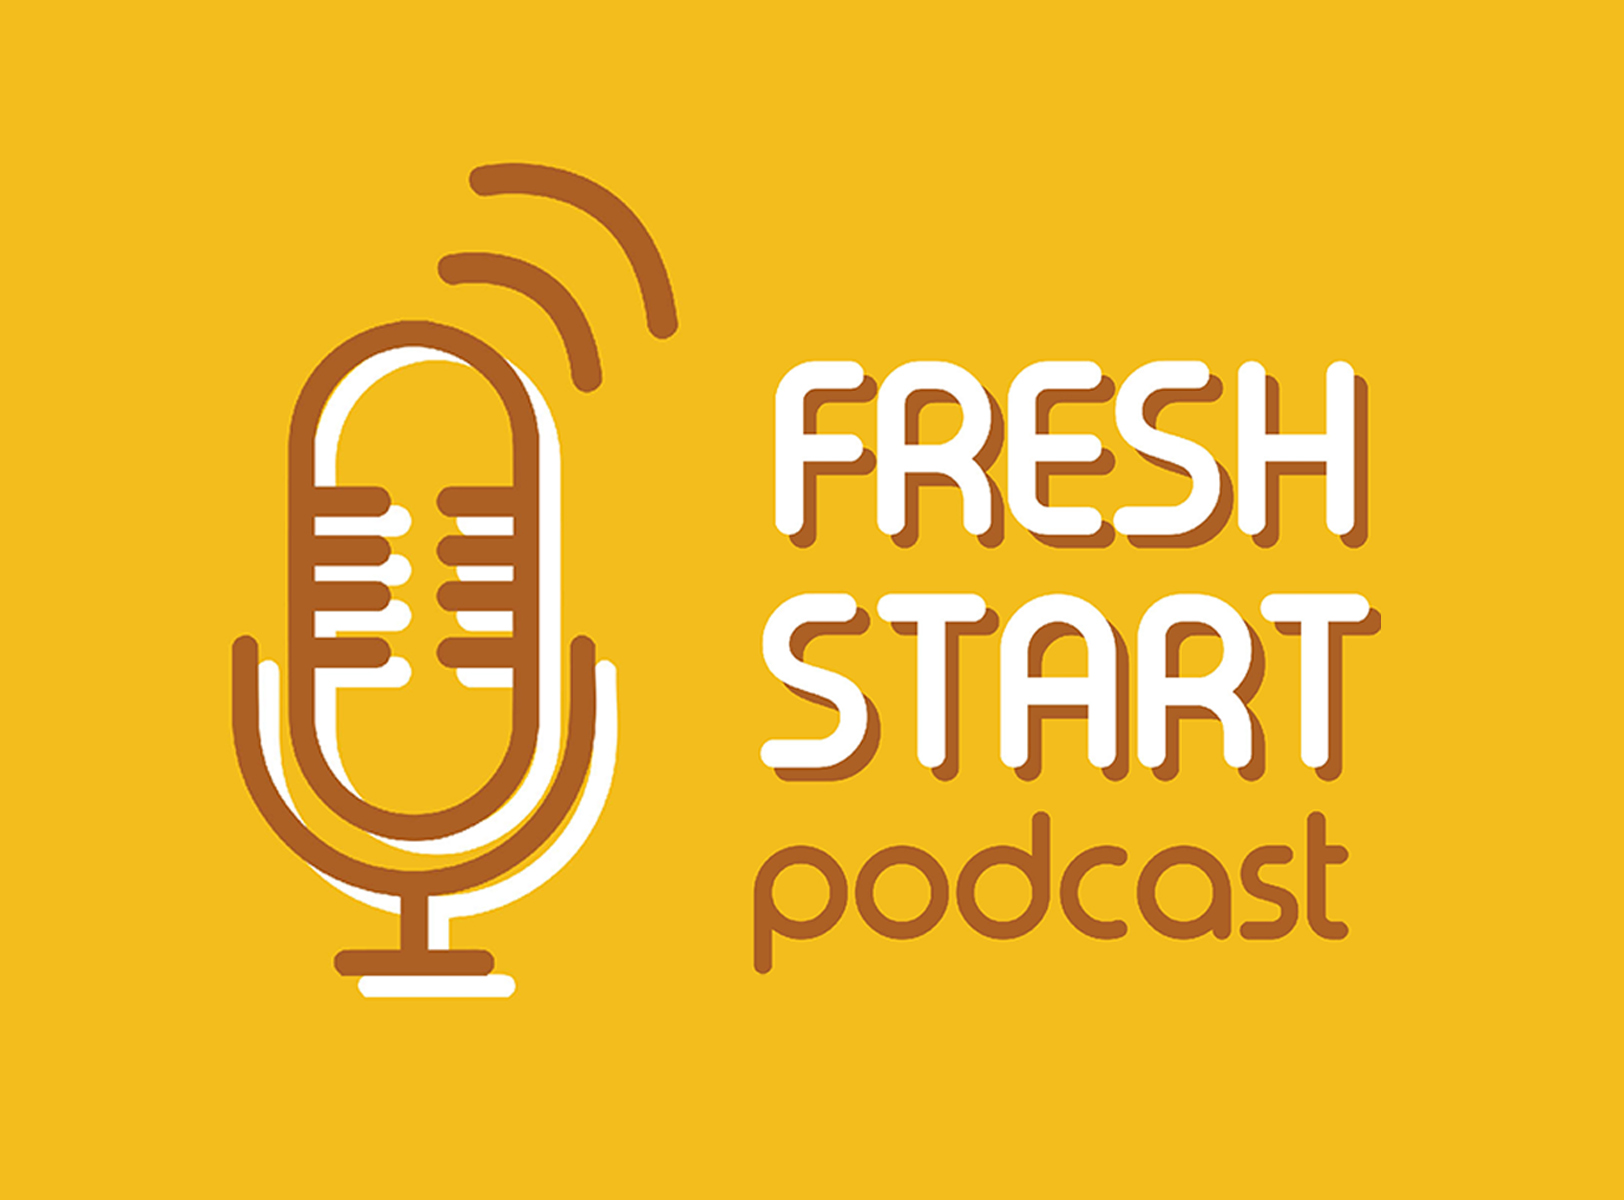 Fresh Start: Podcast News (1/1/2019 Tue.)